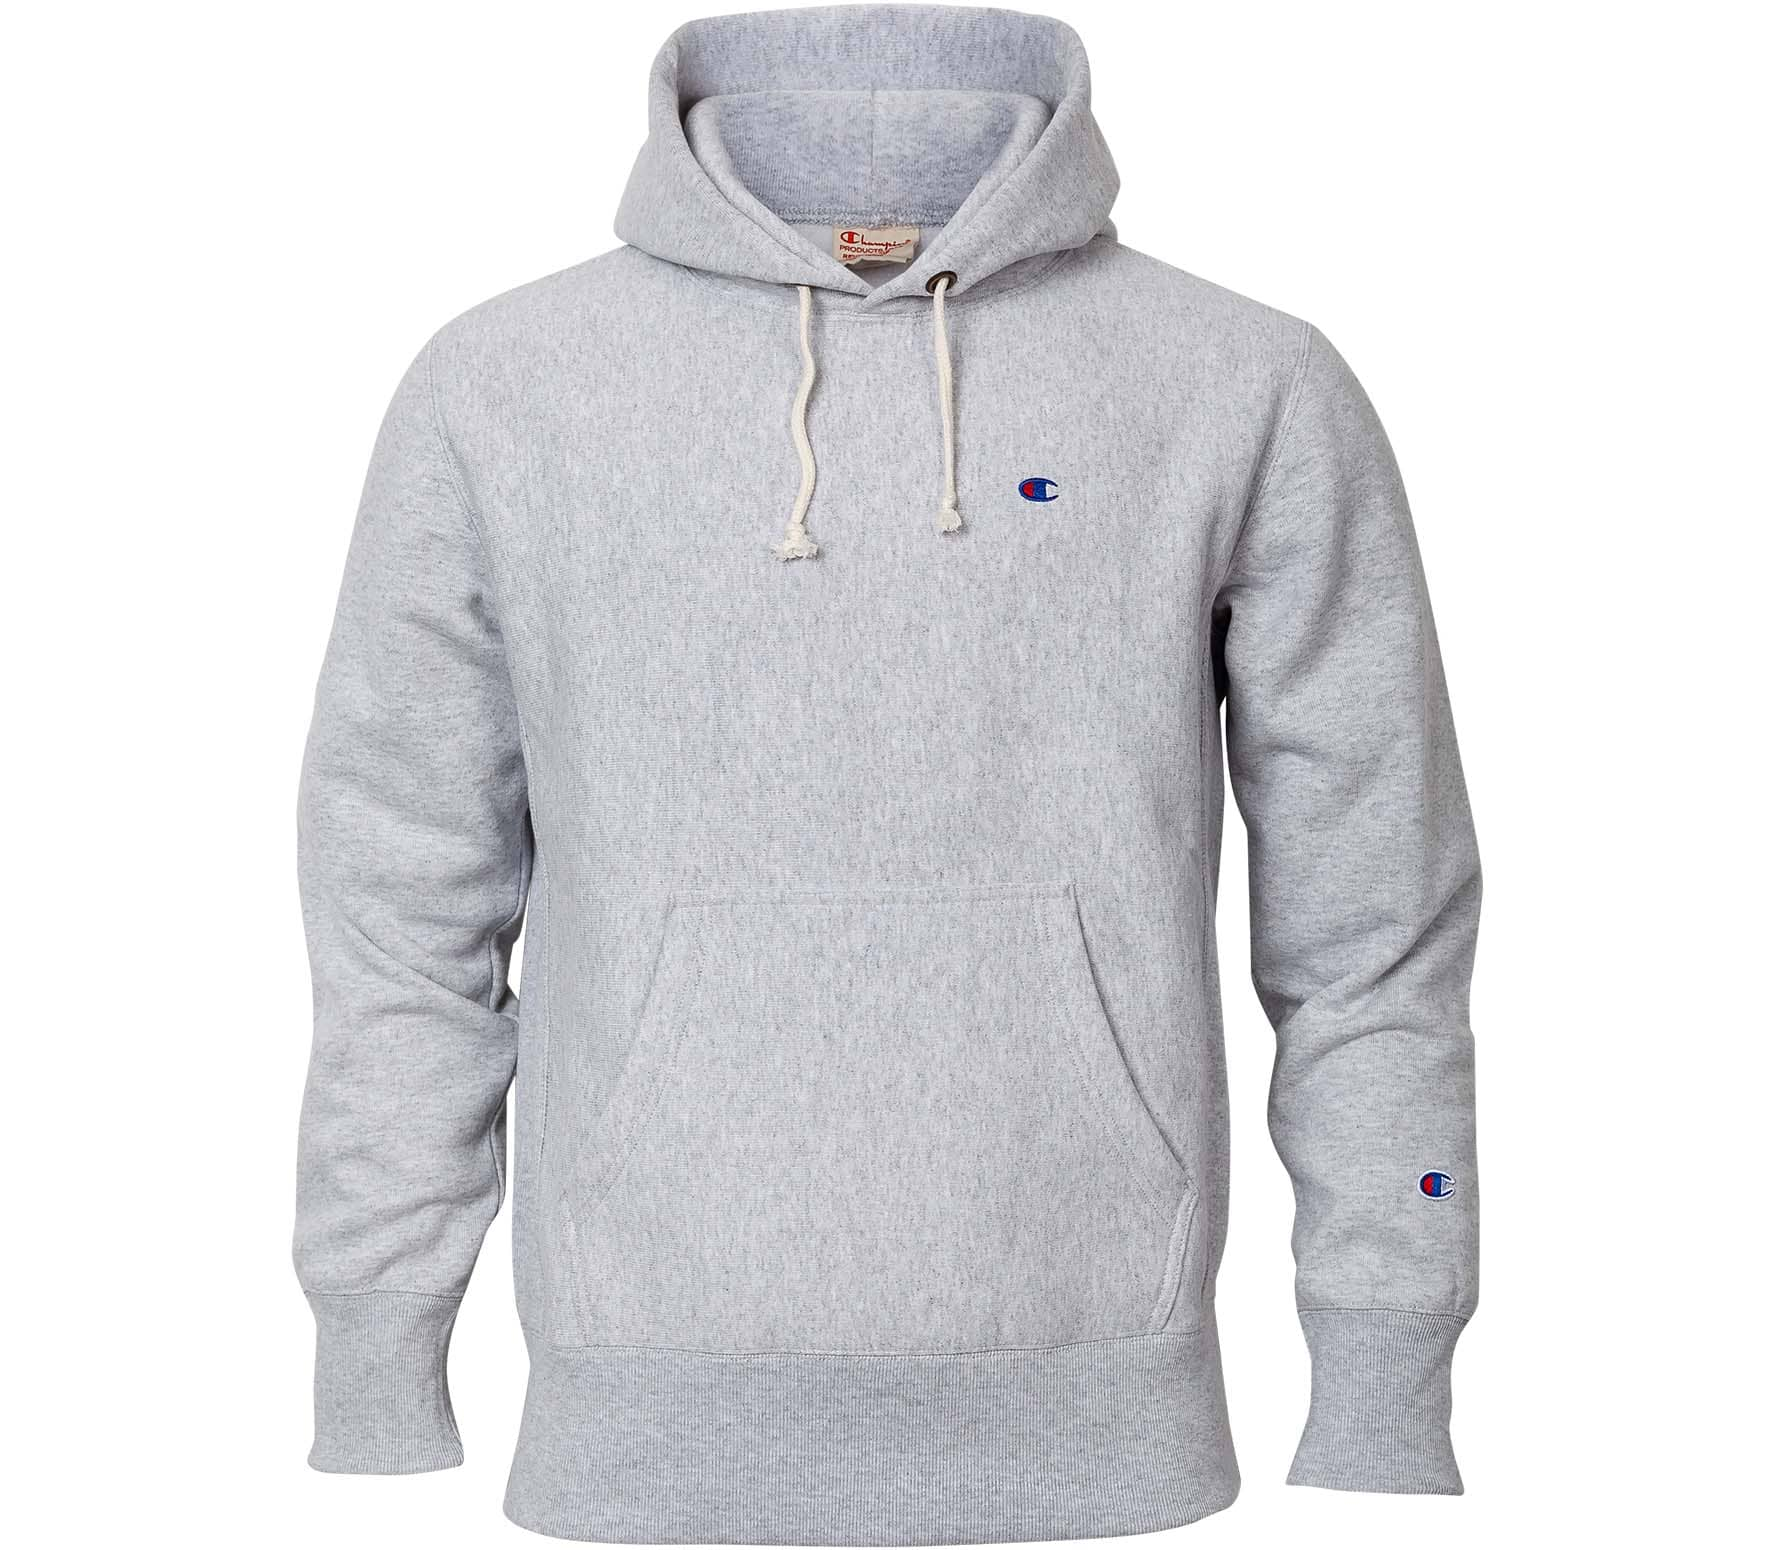 2cae9899f037 Champion Reverse Weave Brushed fleece men s hoodie (grey white ...